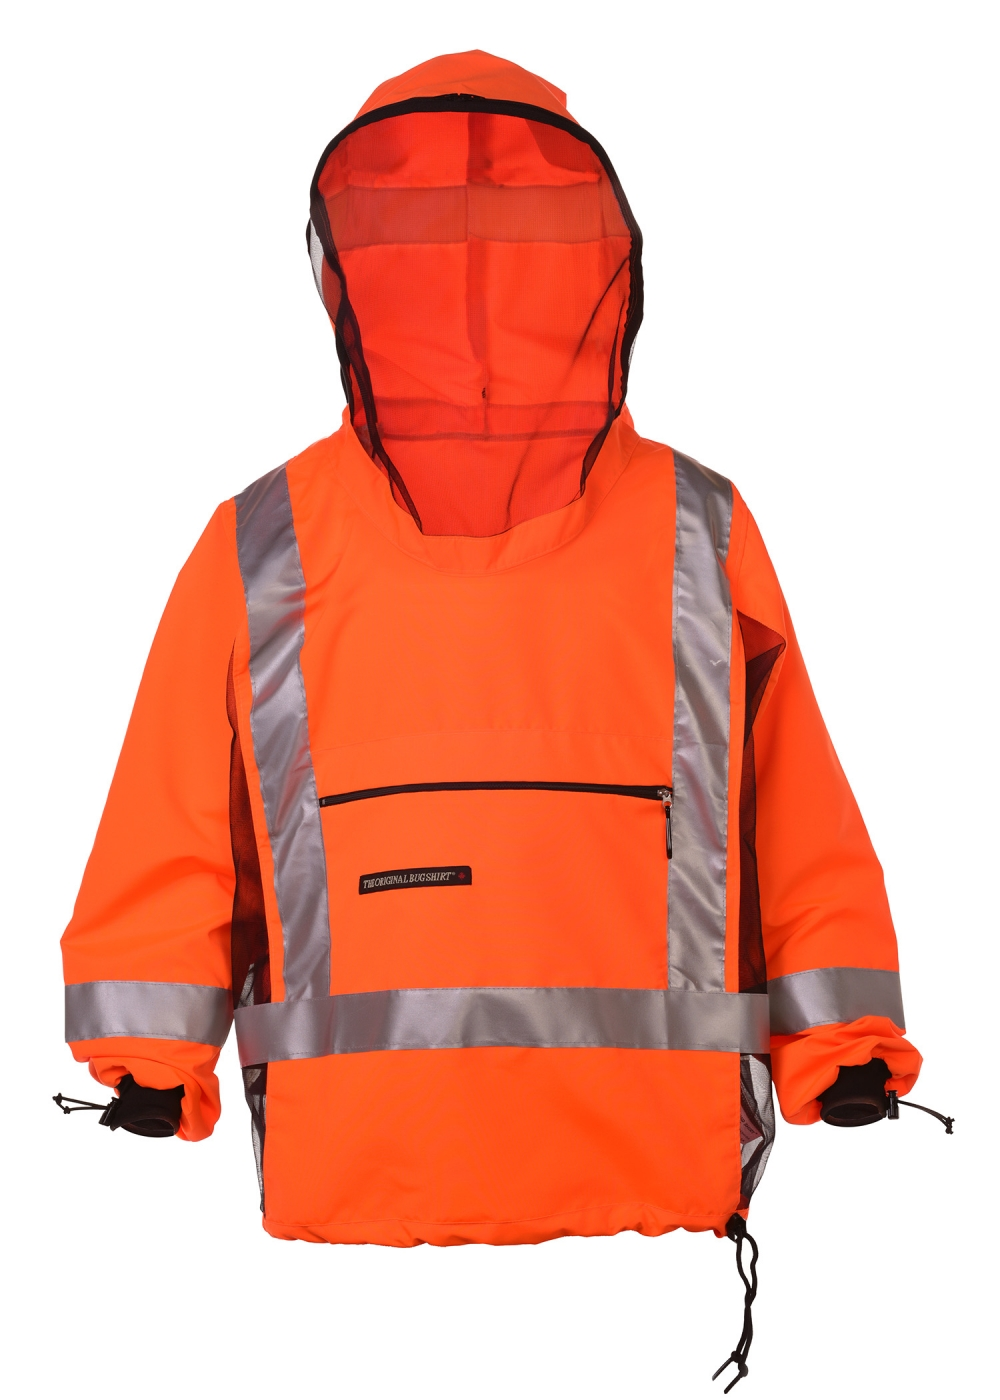 HighVis Ghost Front_3606_5x7